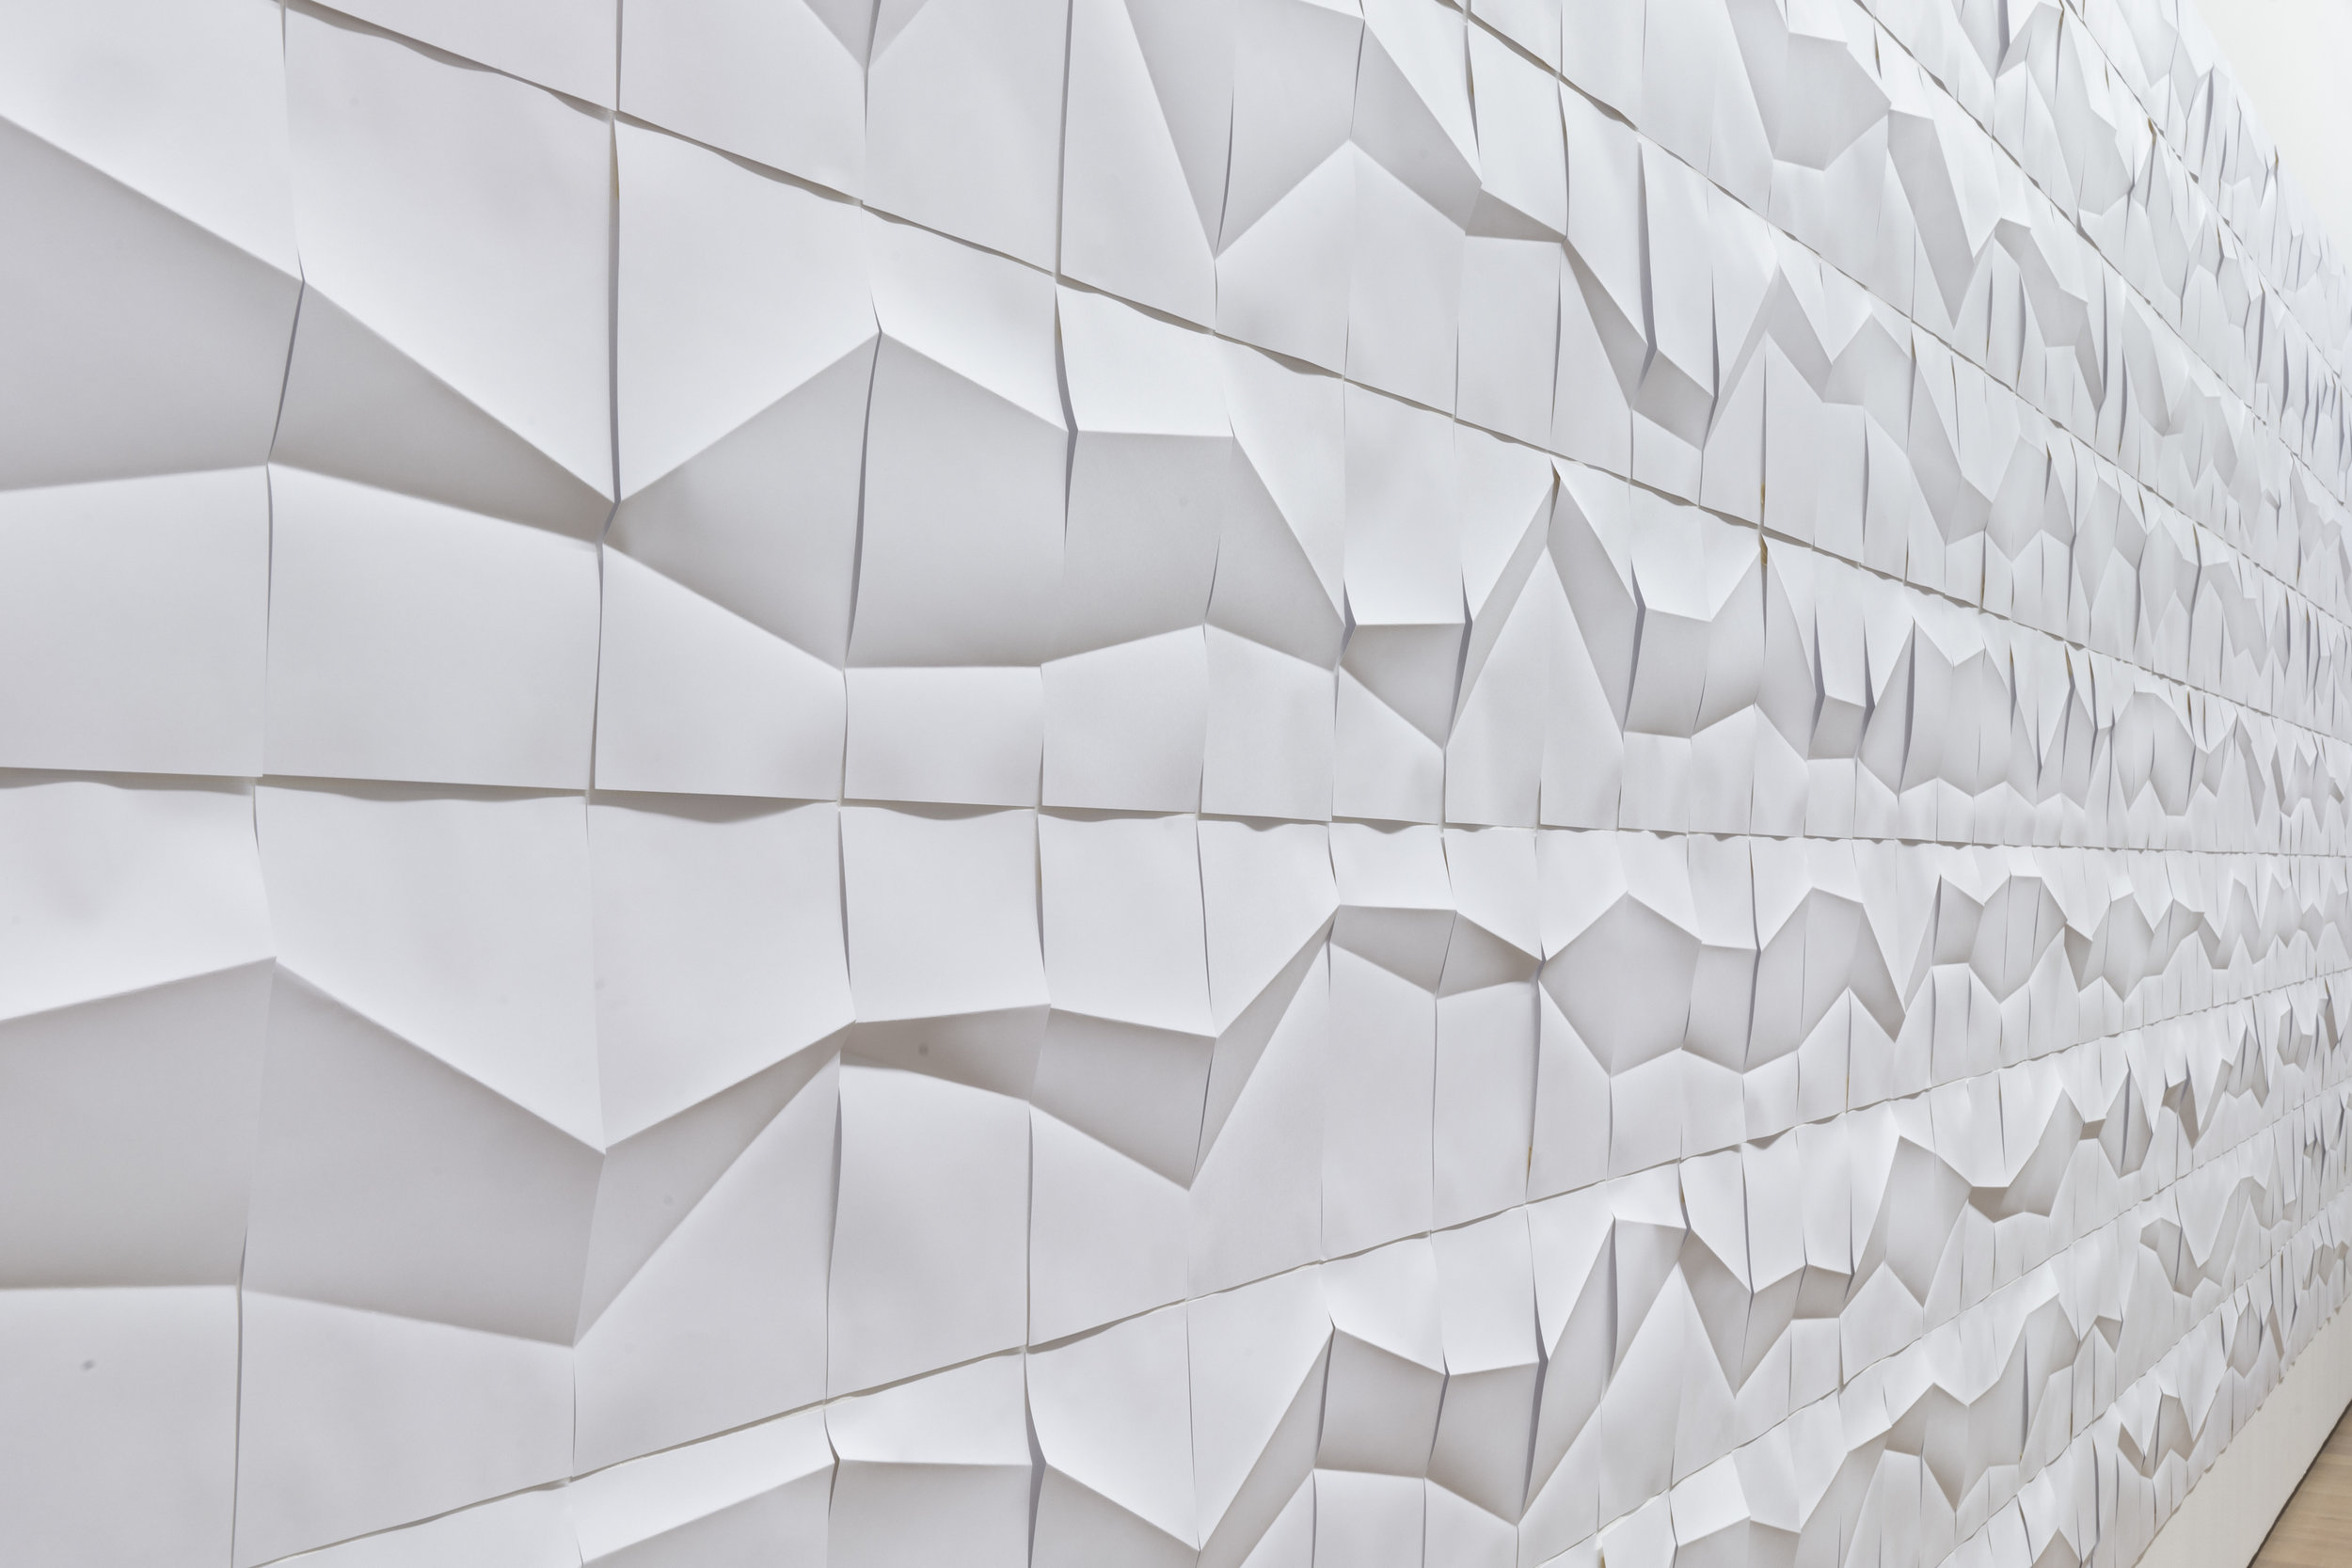 FLUCTUATING FOLDS (2012) Paper installation, variable dimensions